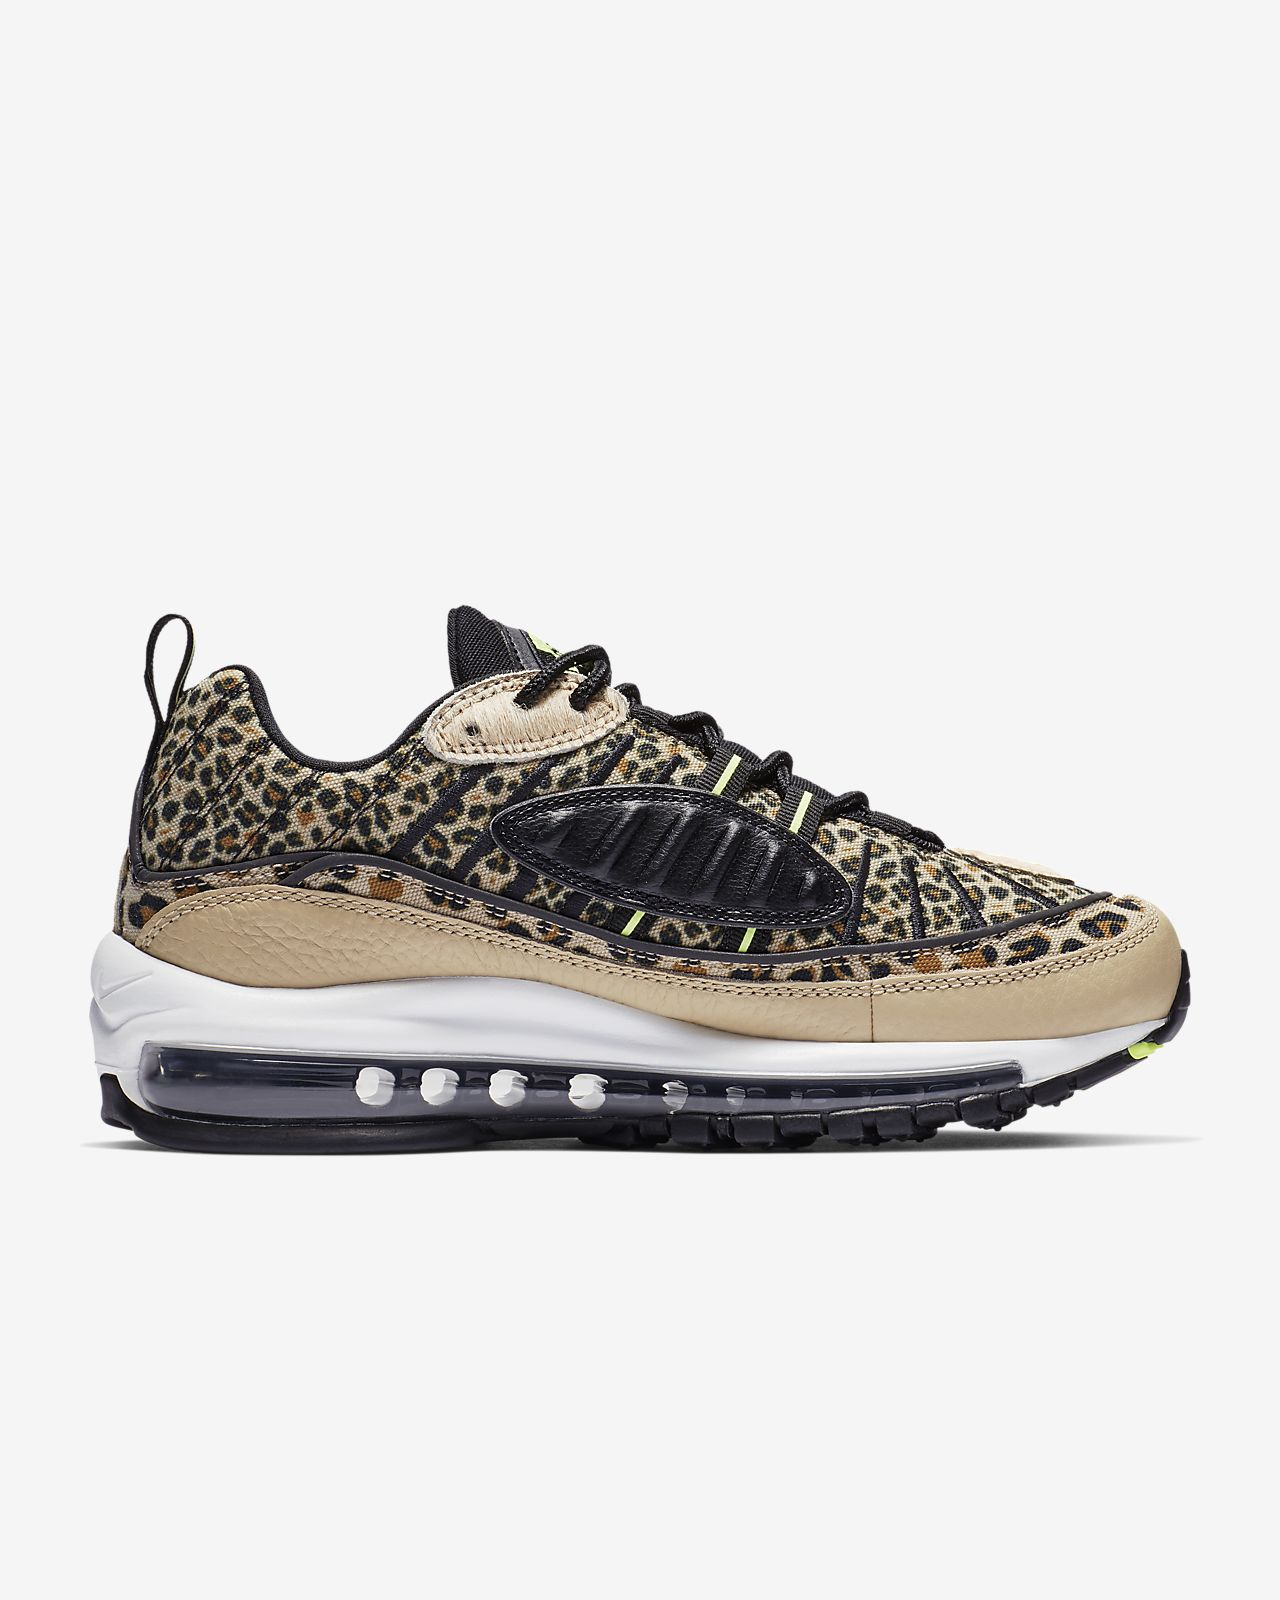 43d93526f8 Nike Air Max 98 Premium Animal Women's Shoe. Nike.com